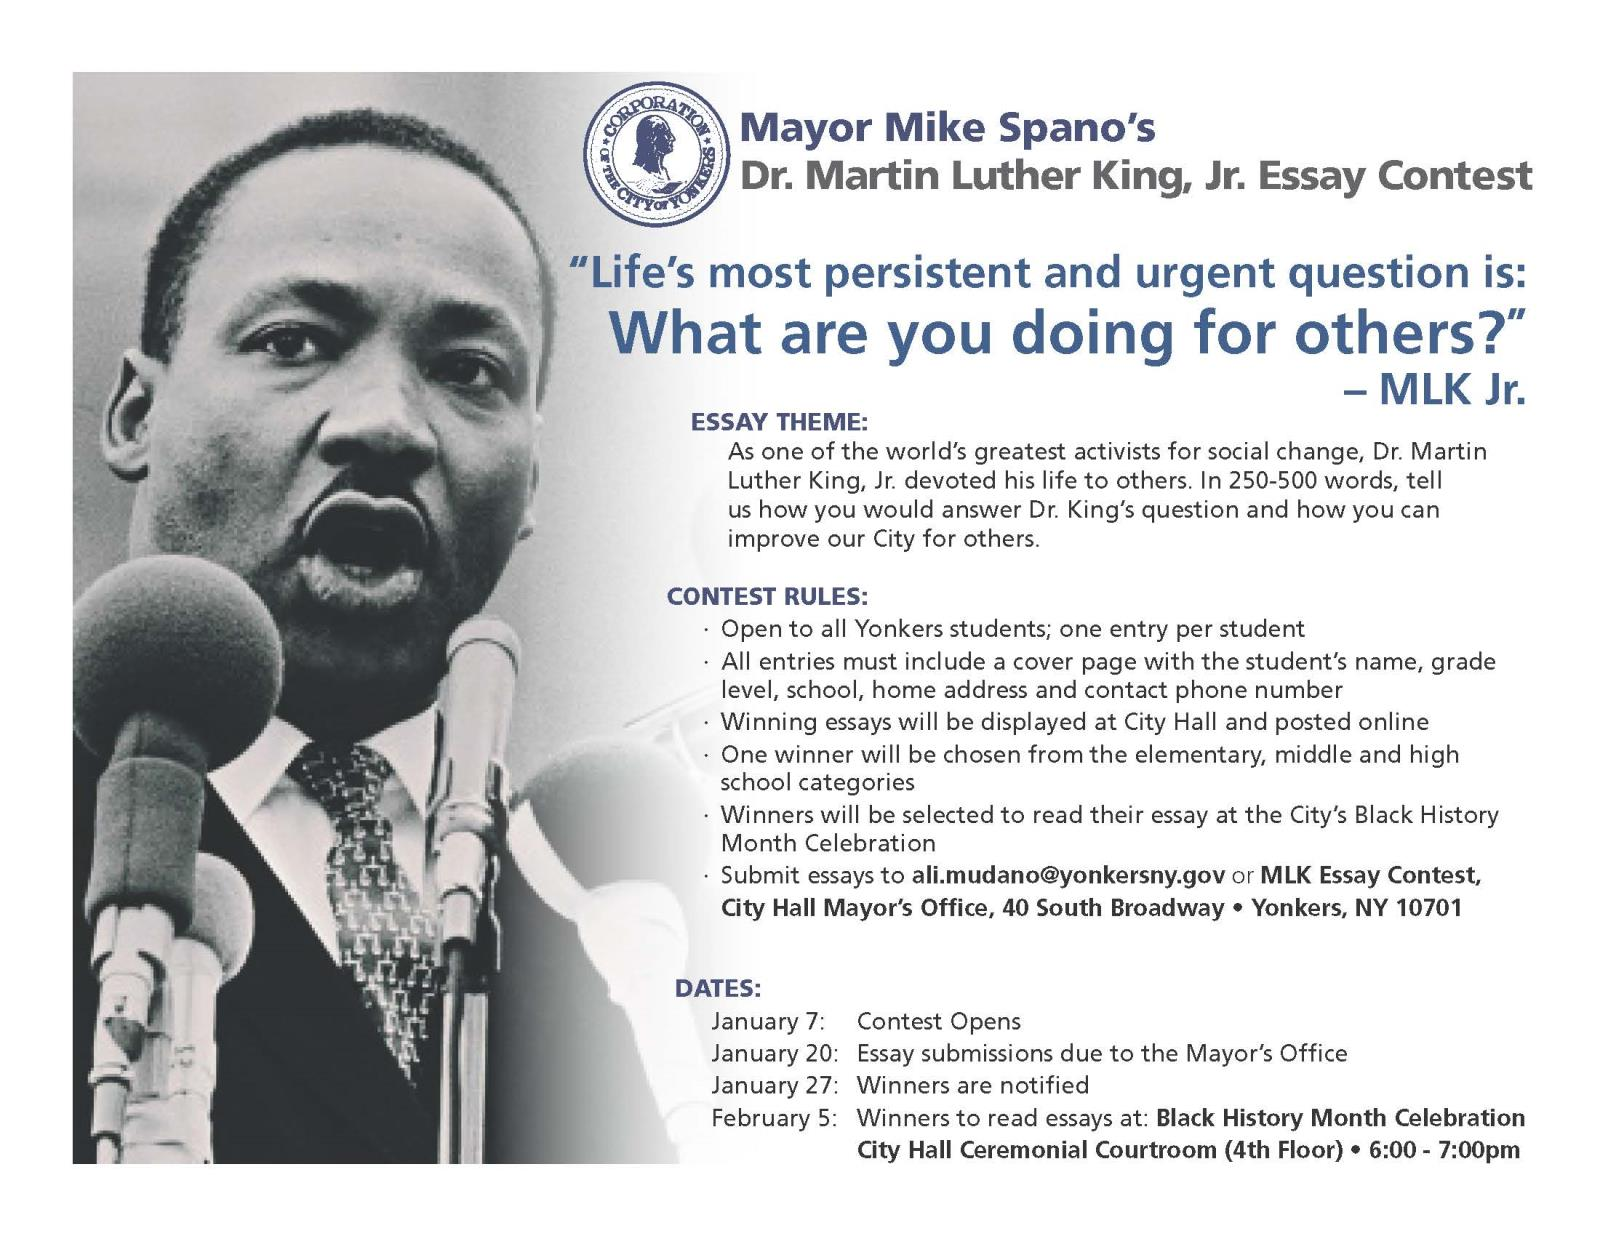 city of yonkers ny news mlk essaycontest flyer